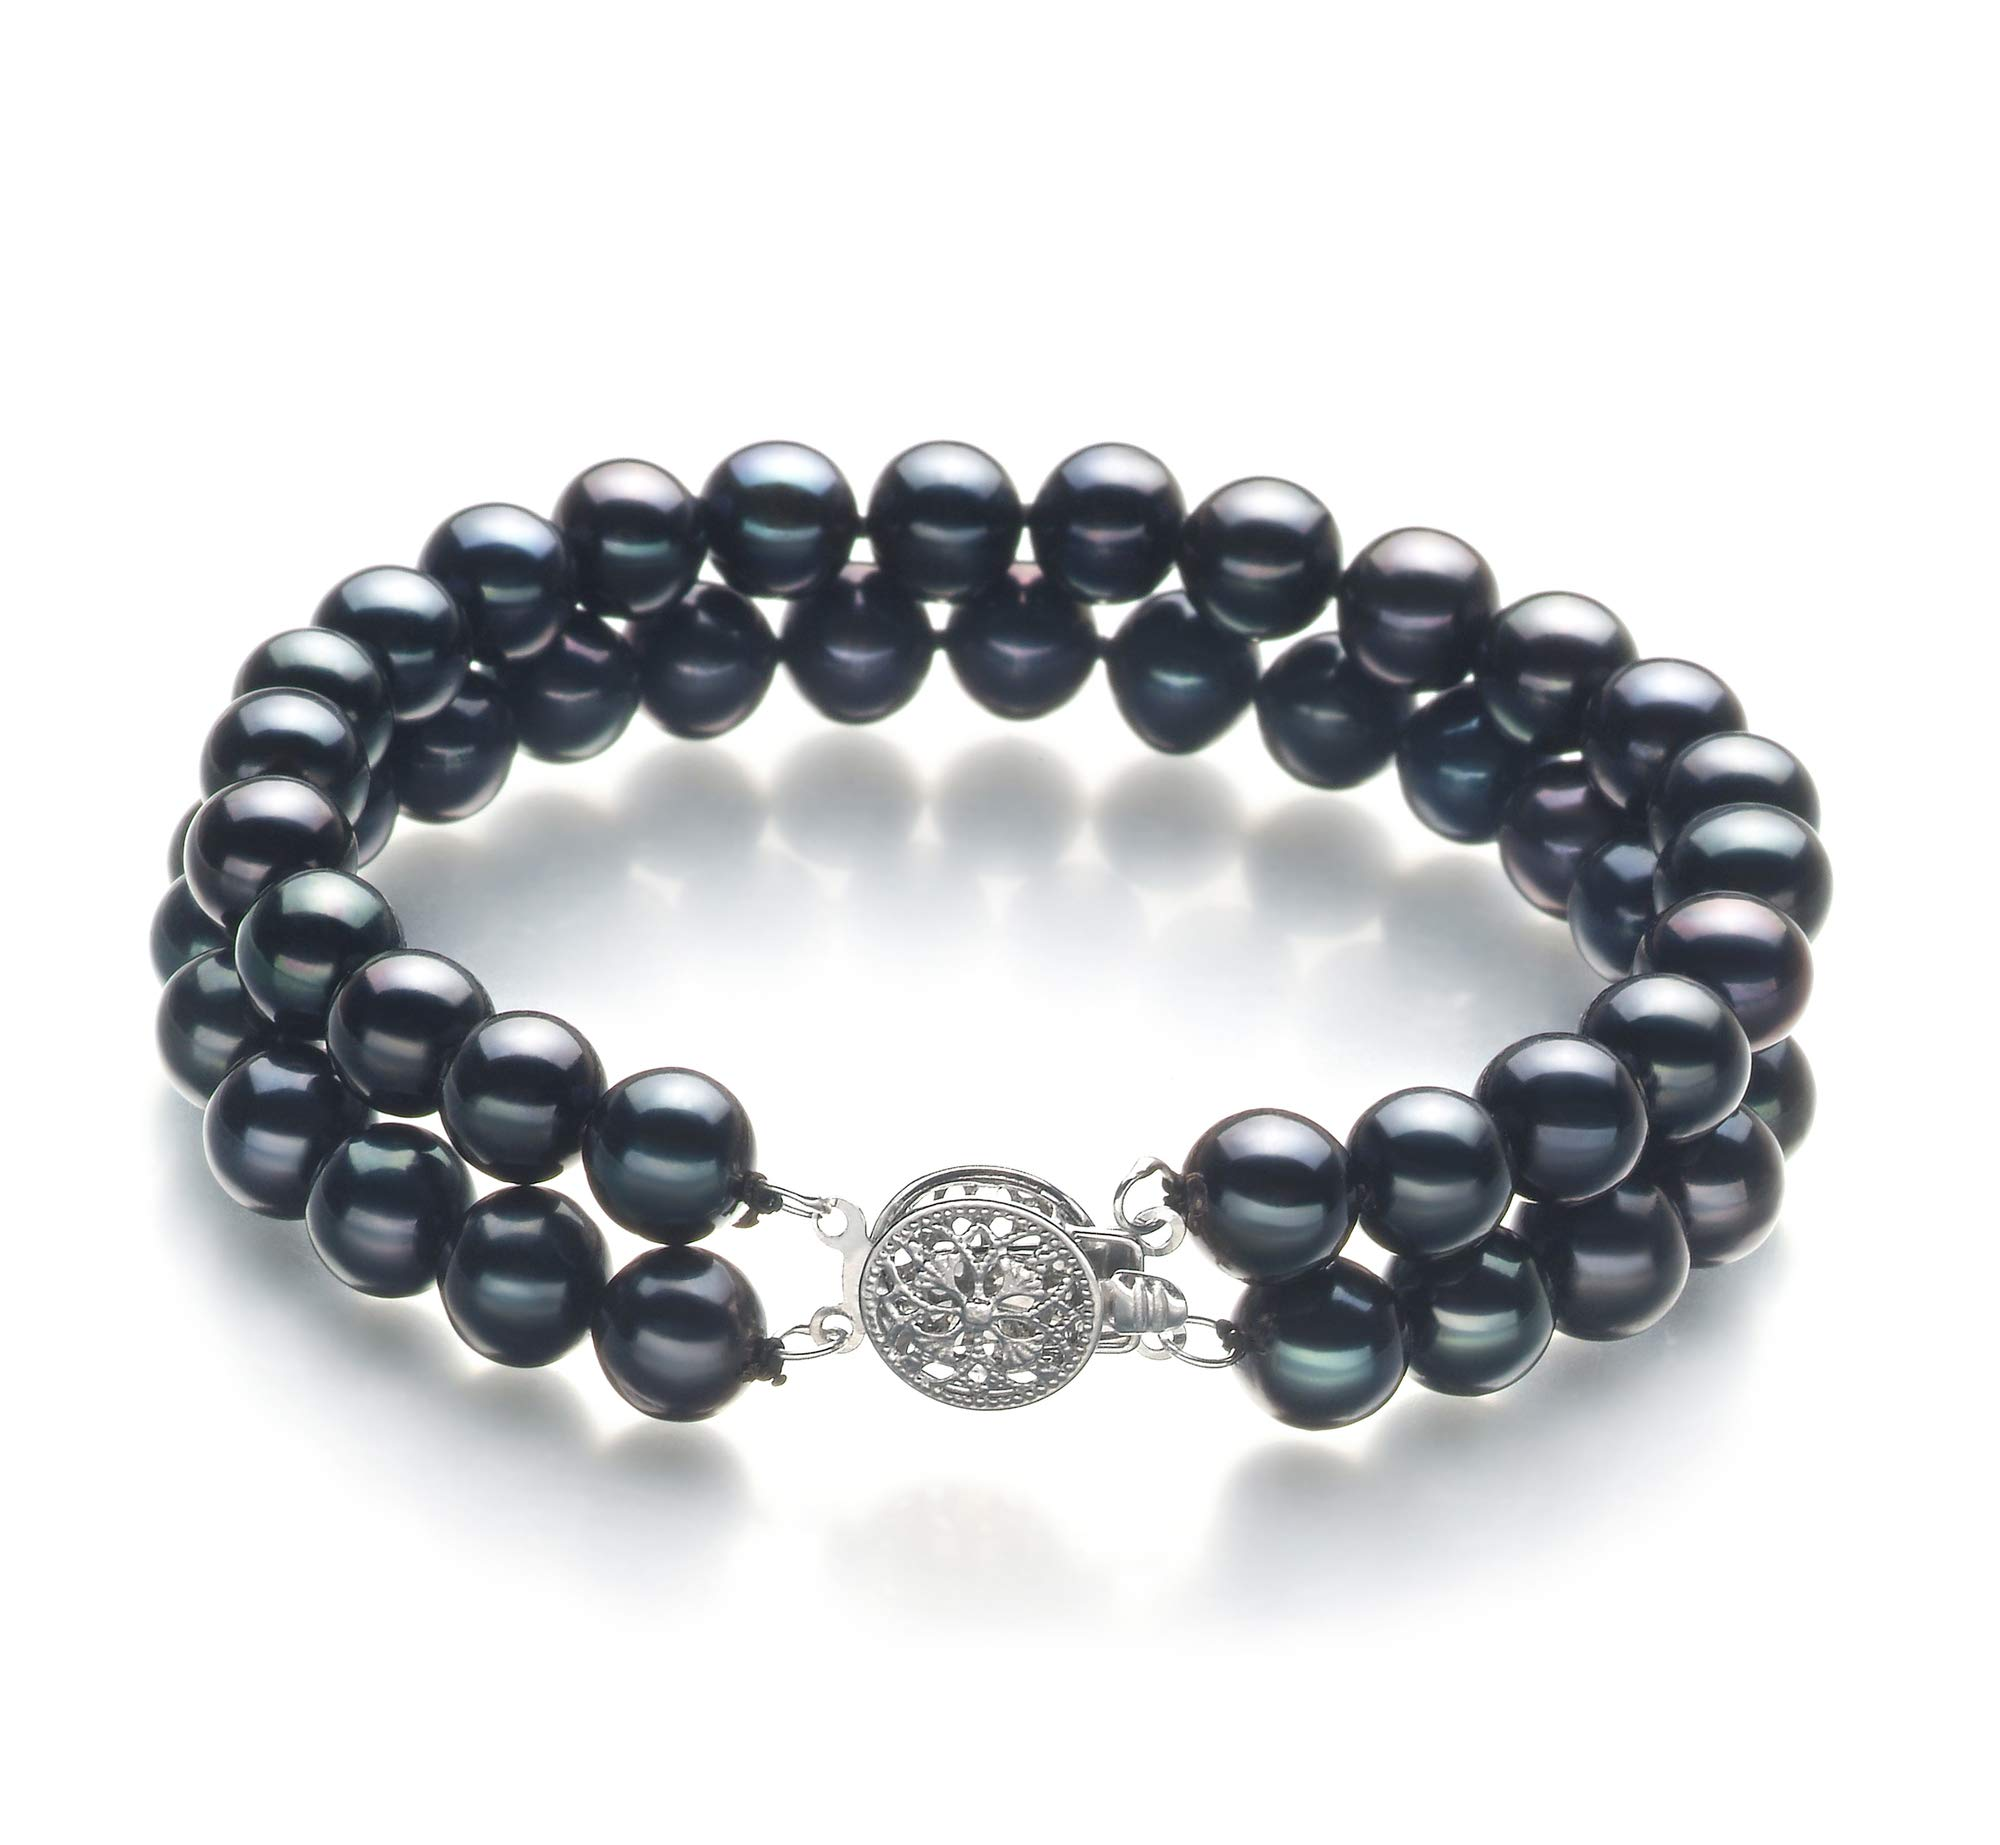 Henrike Black 6-7mm Double Strand AA Quality Freshwater 925 Sterling Silver Cultured Pearl Bracelet